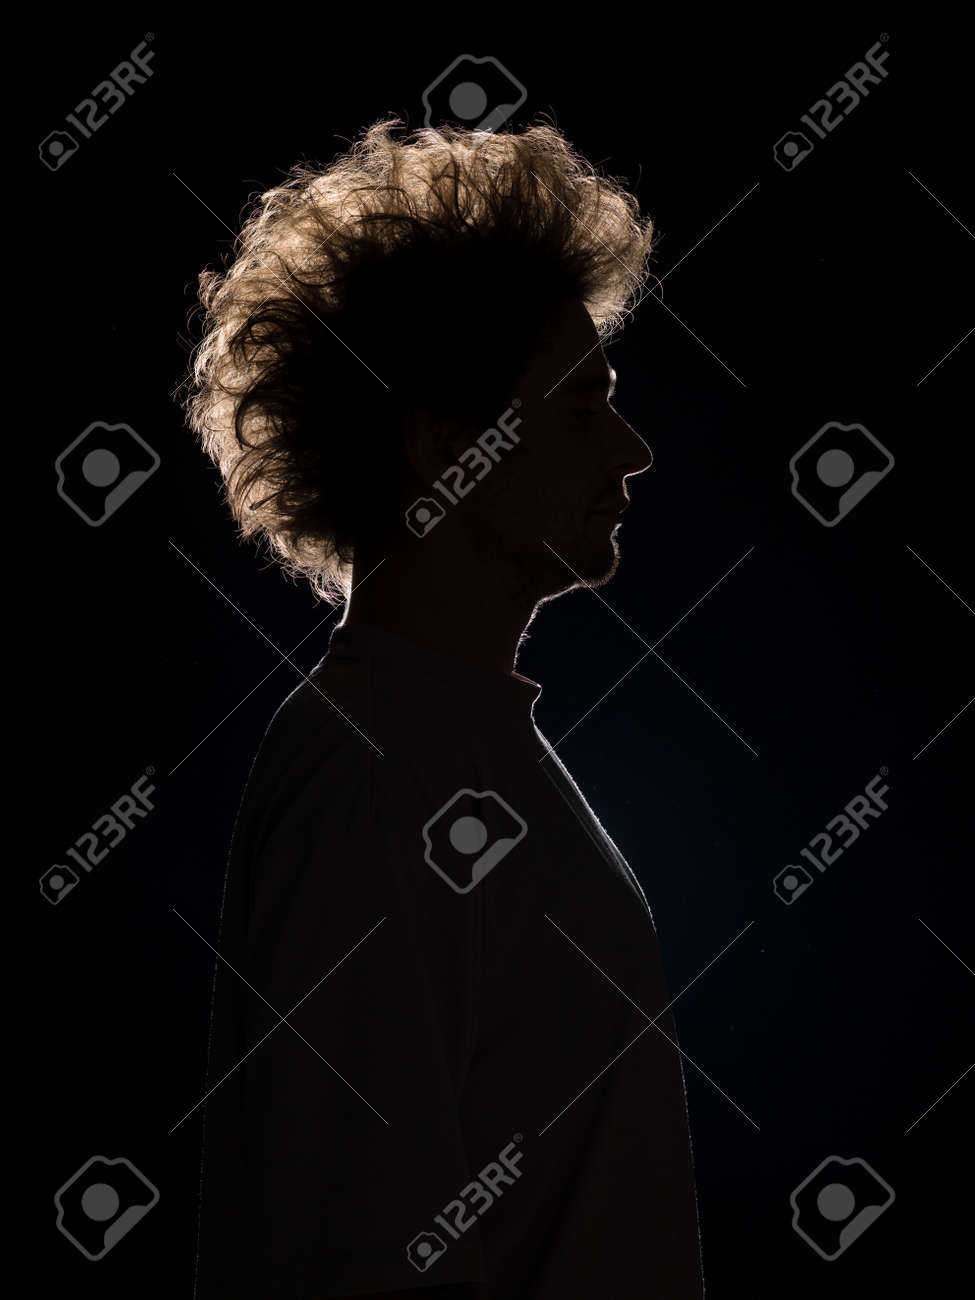 Profile of man in black shadow with tousled hair on black background stock photo 23926870